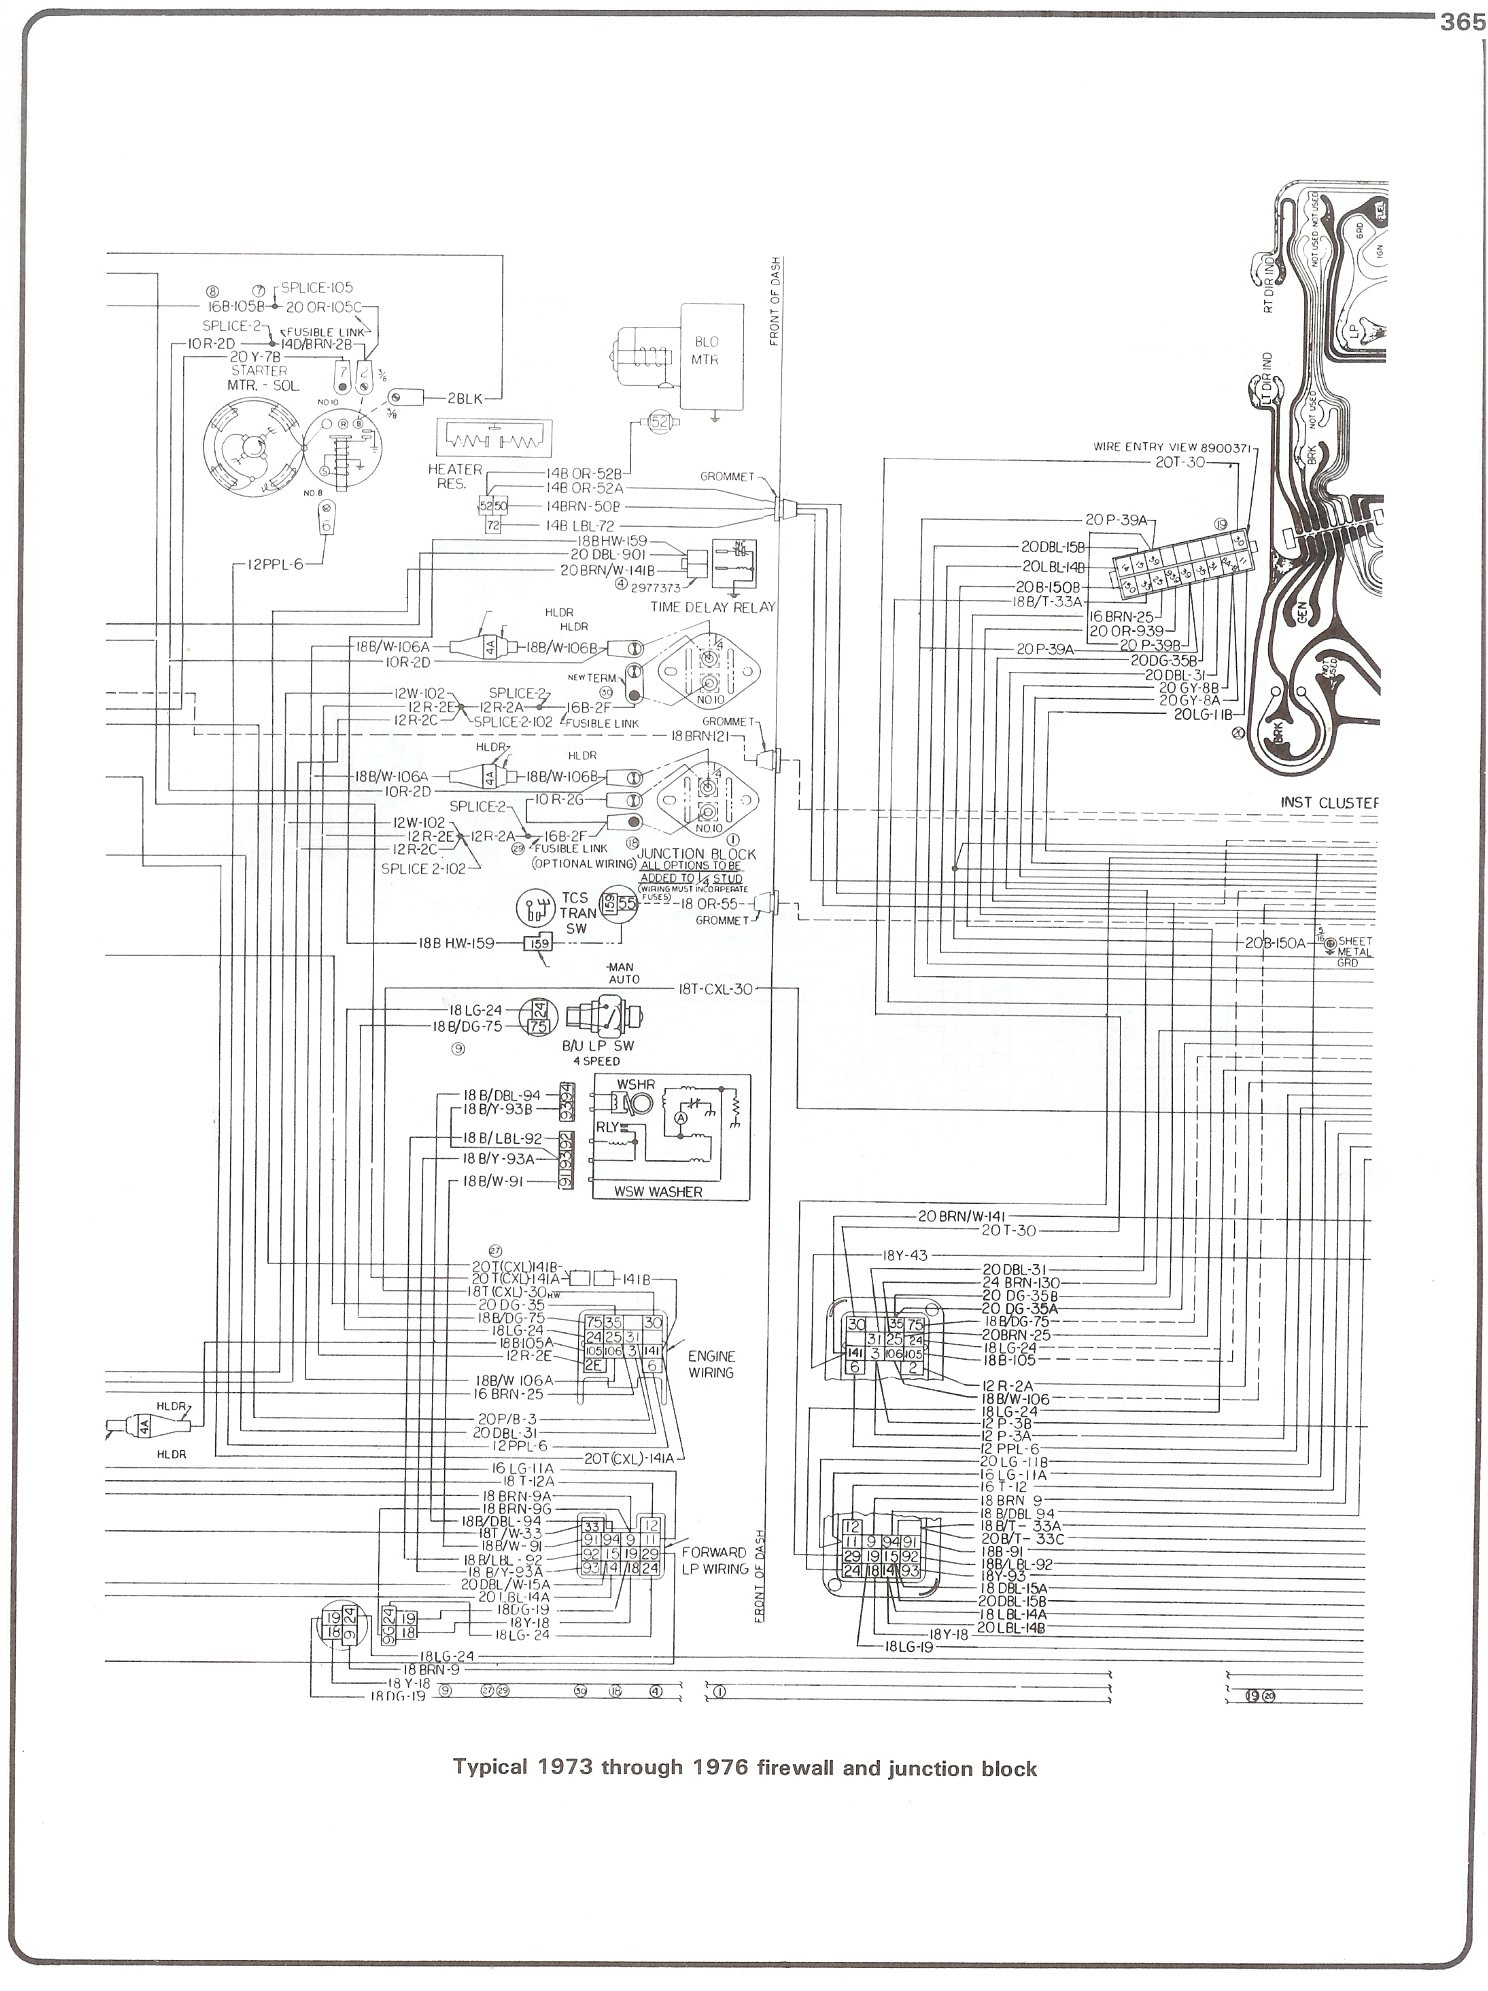 73 76_firewall_junct complete 73 87 wiring diagrams 1984 chevy c10 wiring diagram at soozxer.org